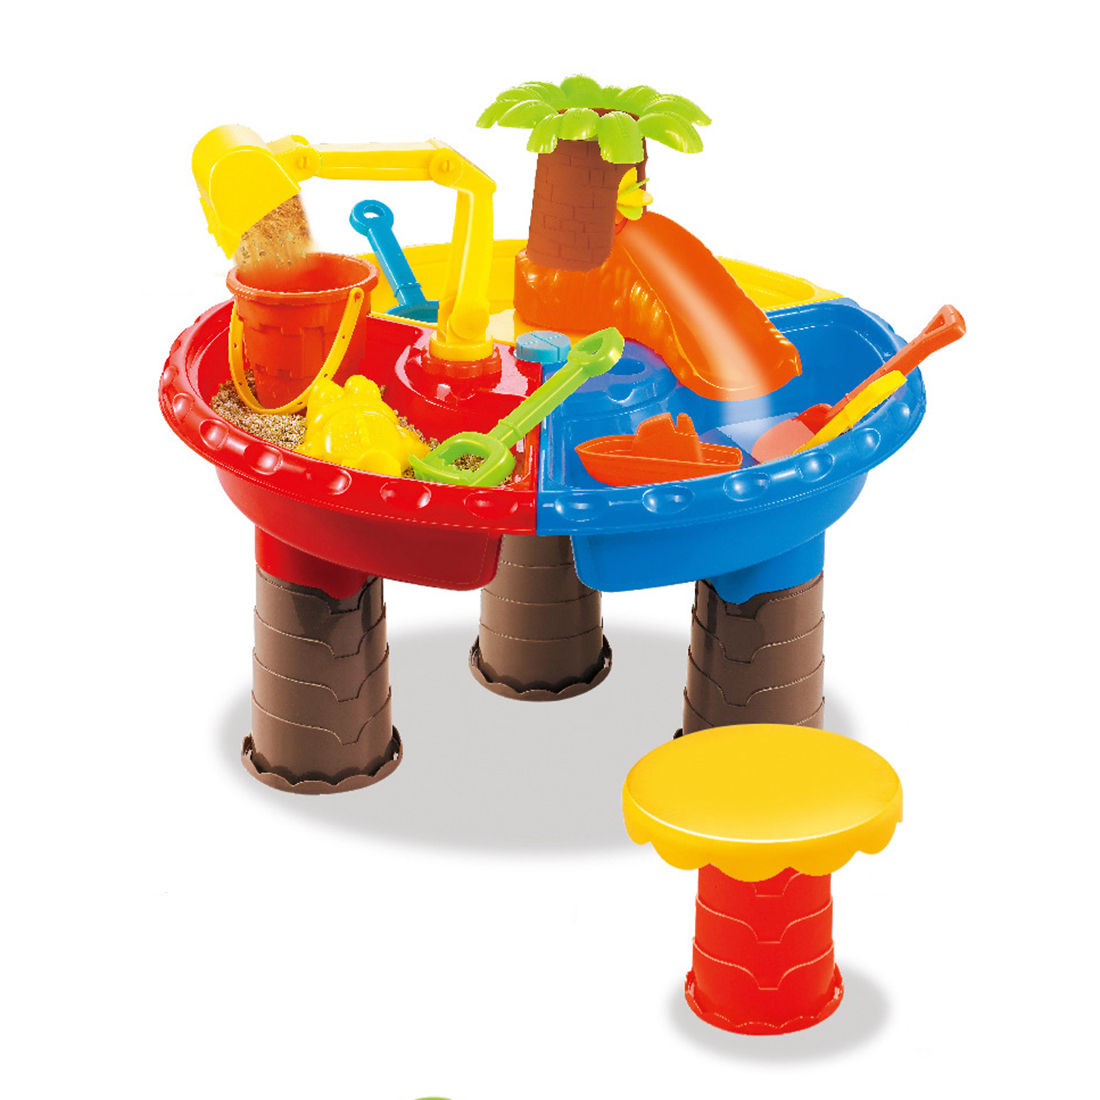 22Pcs Kids Plastic Sand Pit Set Beach Sand Table Water Play Toy Outdoor Beach Sanding Toys For Children Kids22Pcs Kids Plastic Sand Pit Set Beach Sand Table Water Play Toy Outdoor Beach Sanding Toys For Children Kids